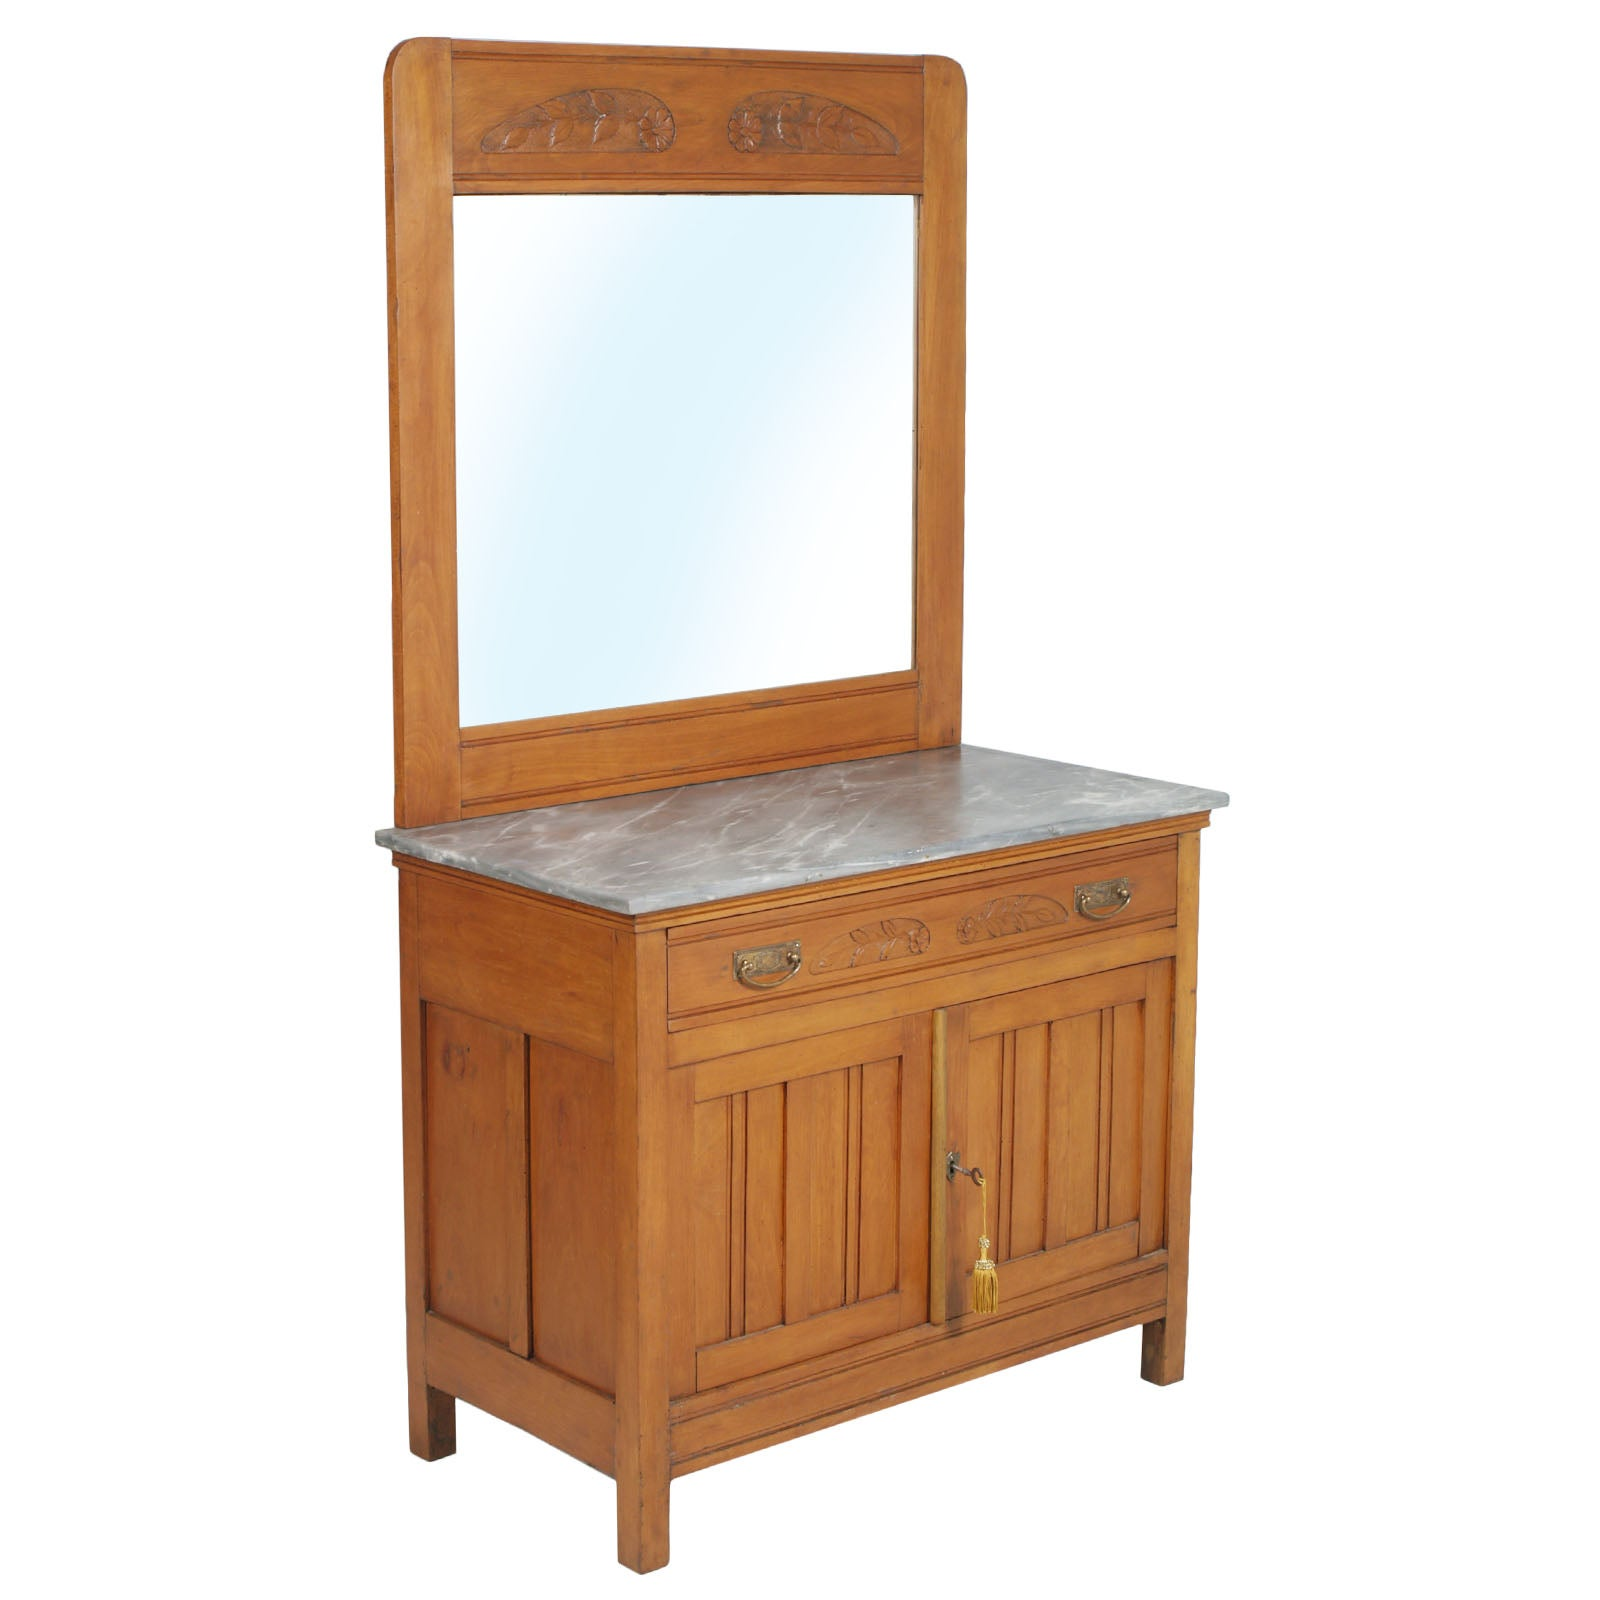 Art Nouveau Vanity Cabinet, Carved Cherrywood, Bevelled Mirror, Gray Marble Top